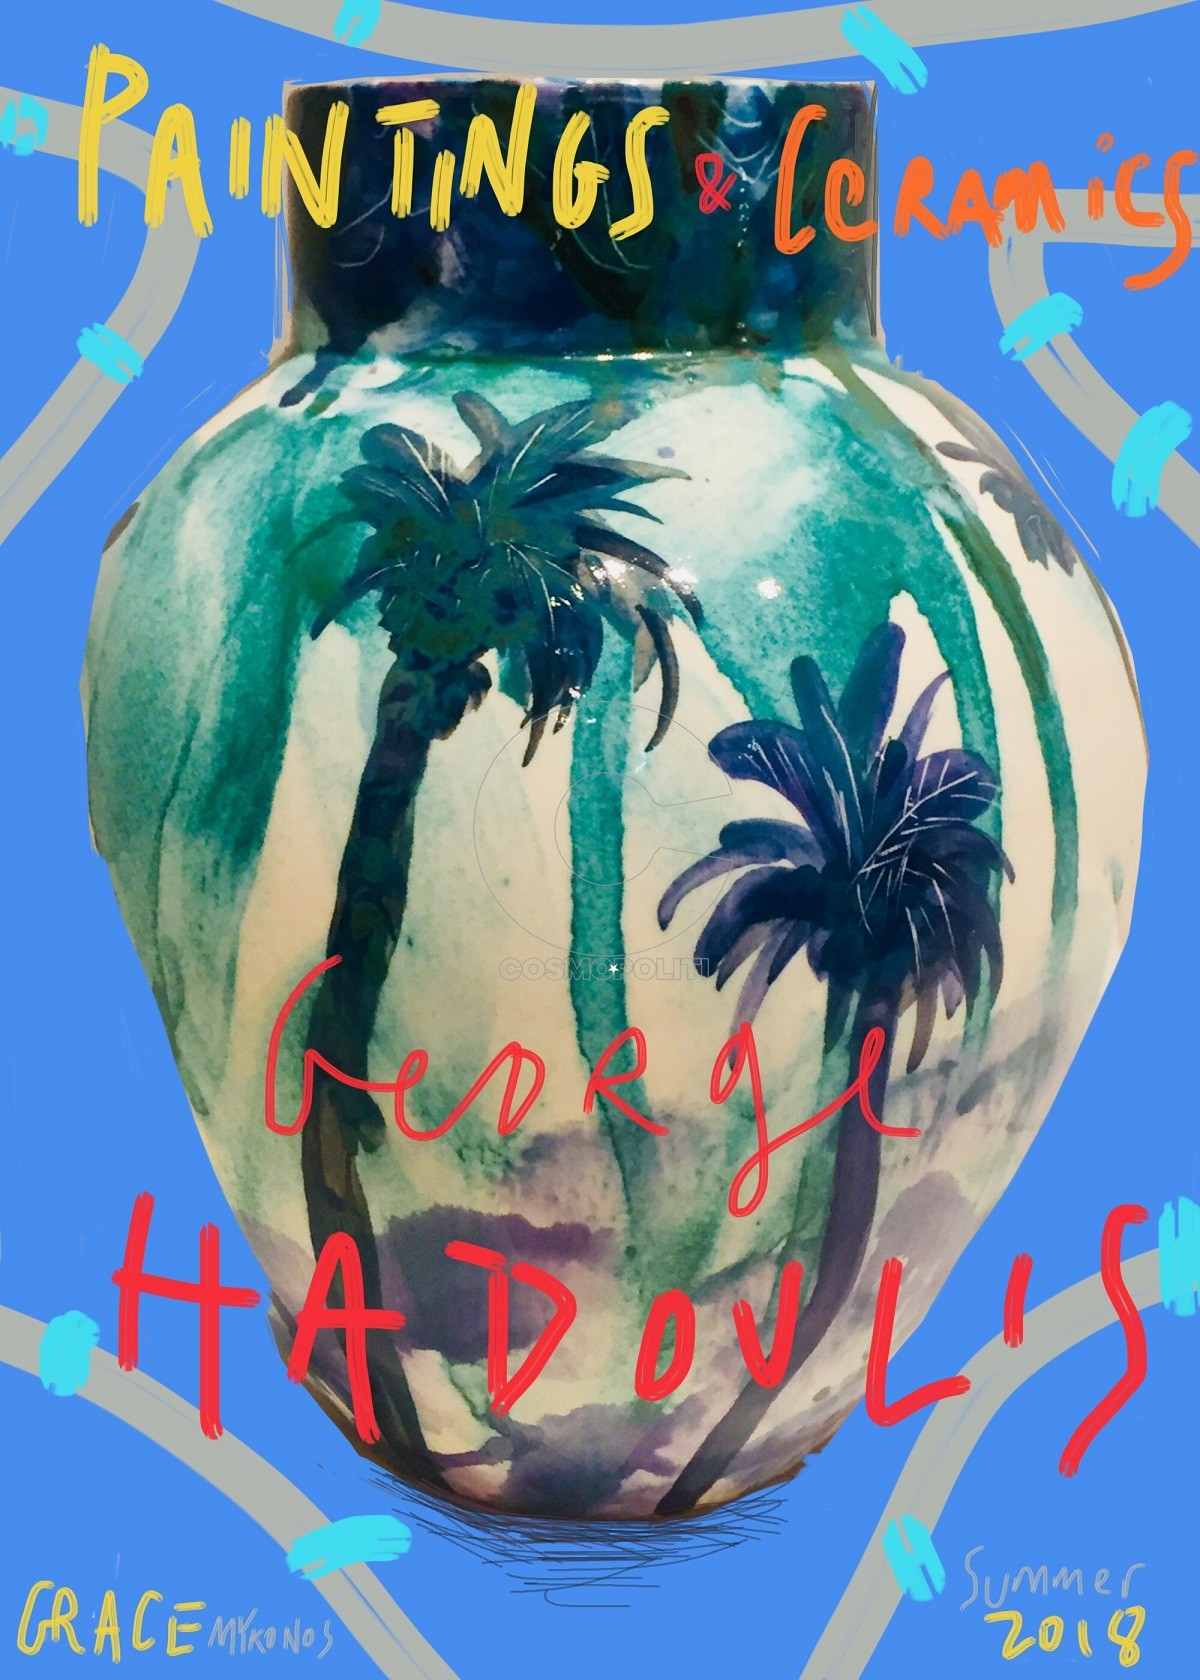 George Hadoulis_PaintingsAndCeramics_GraceMykonos